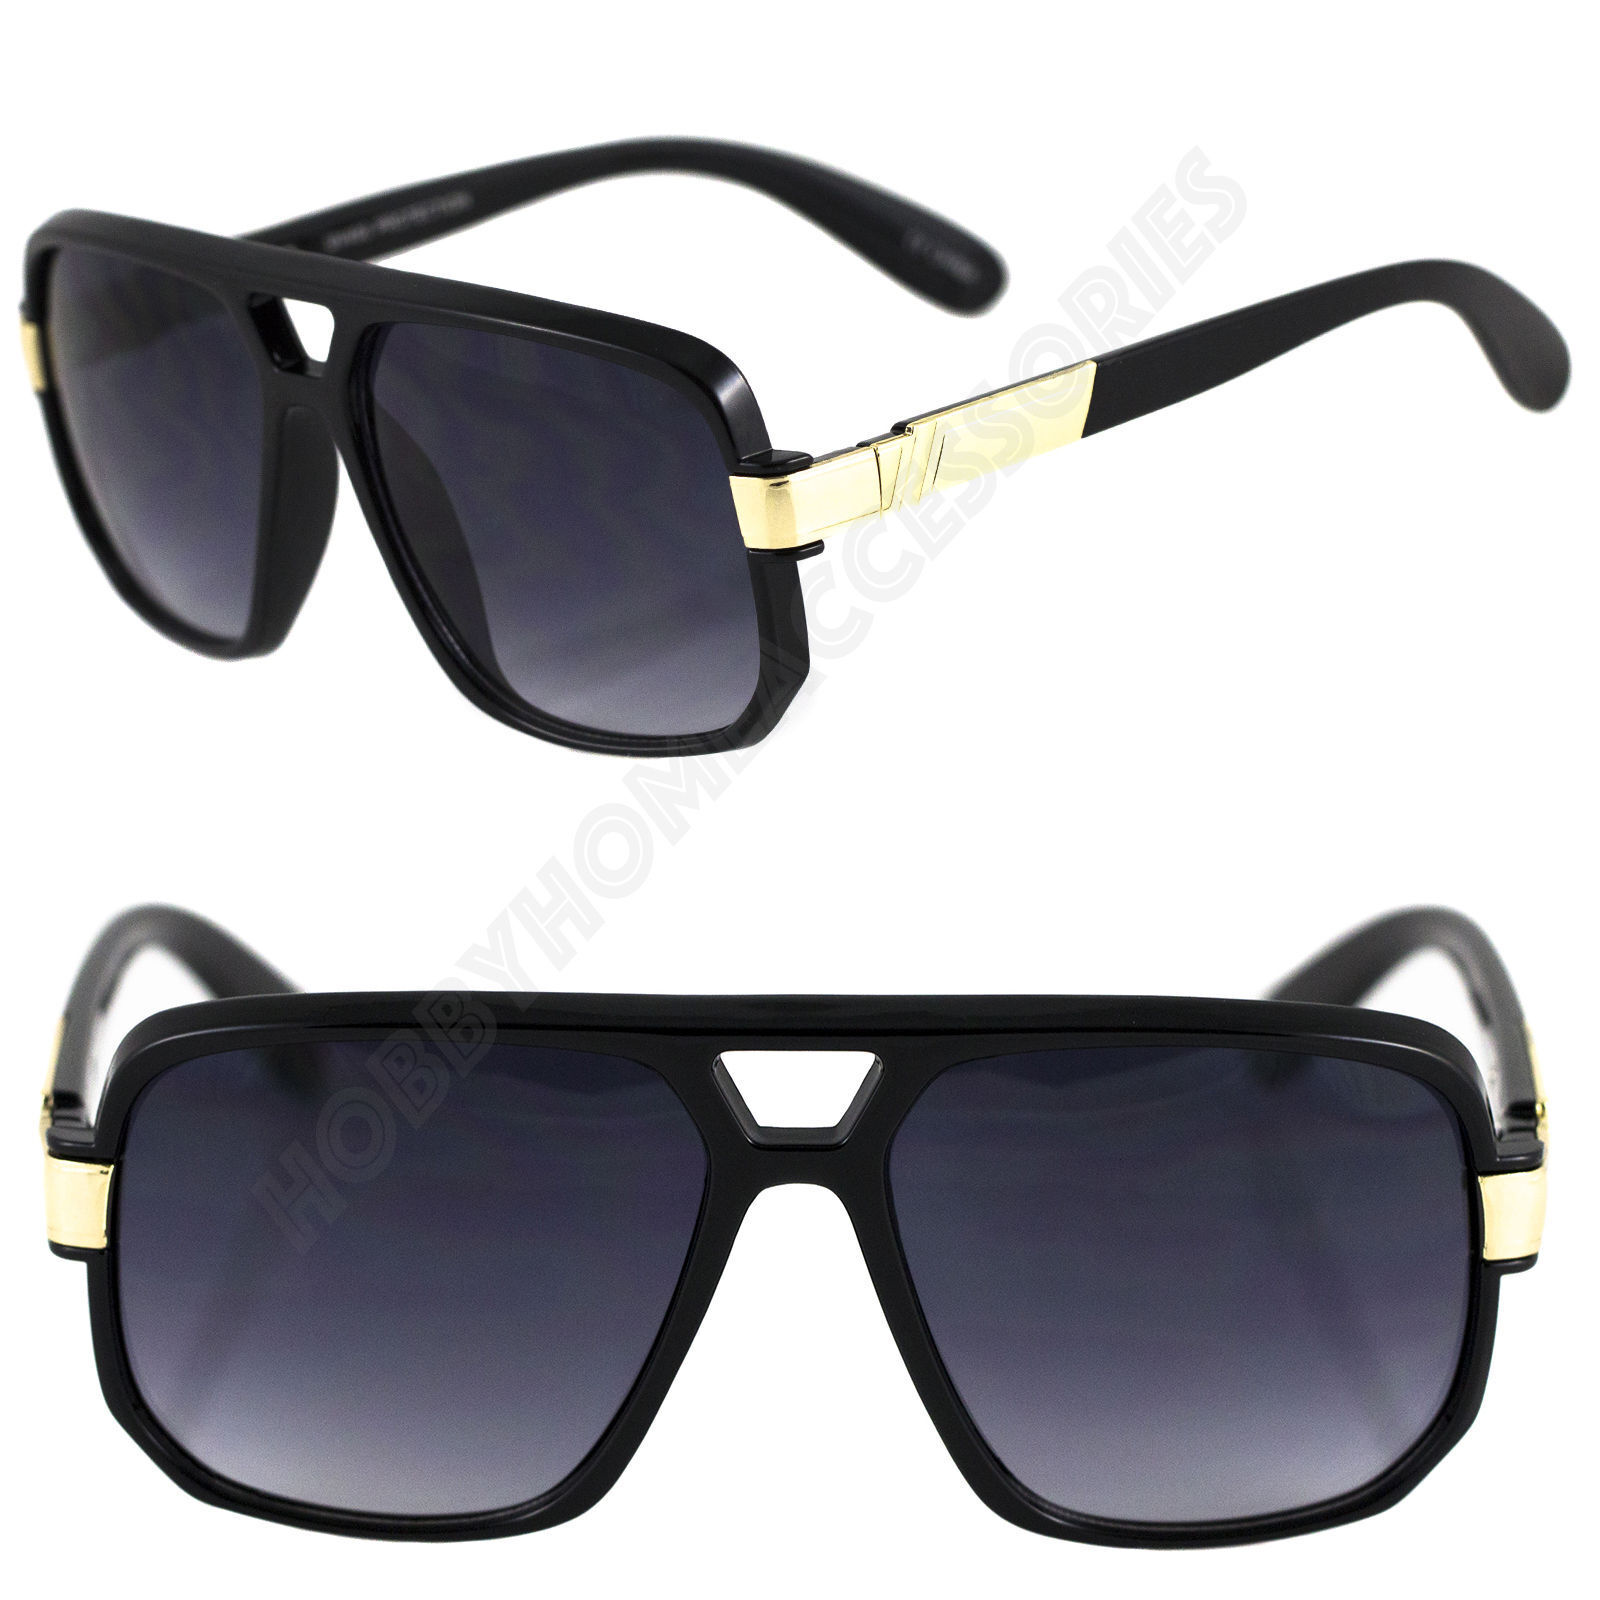 2 Pairs Black Gold